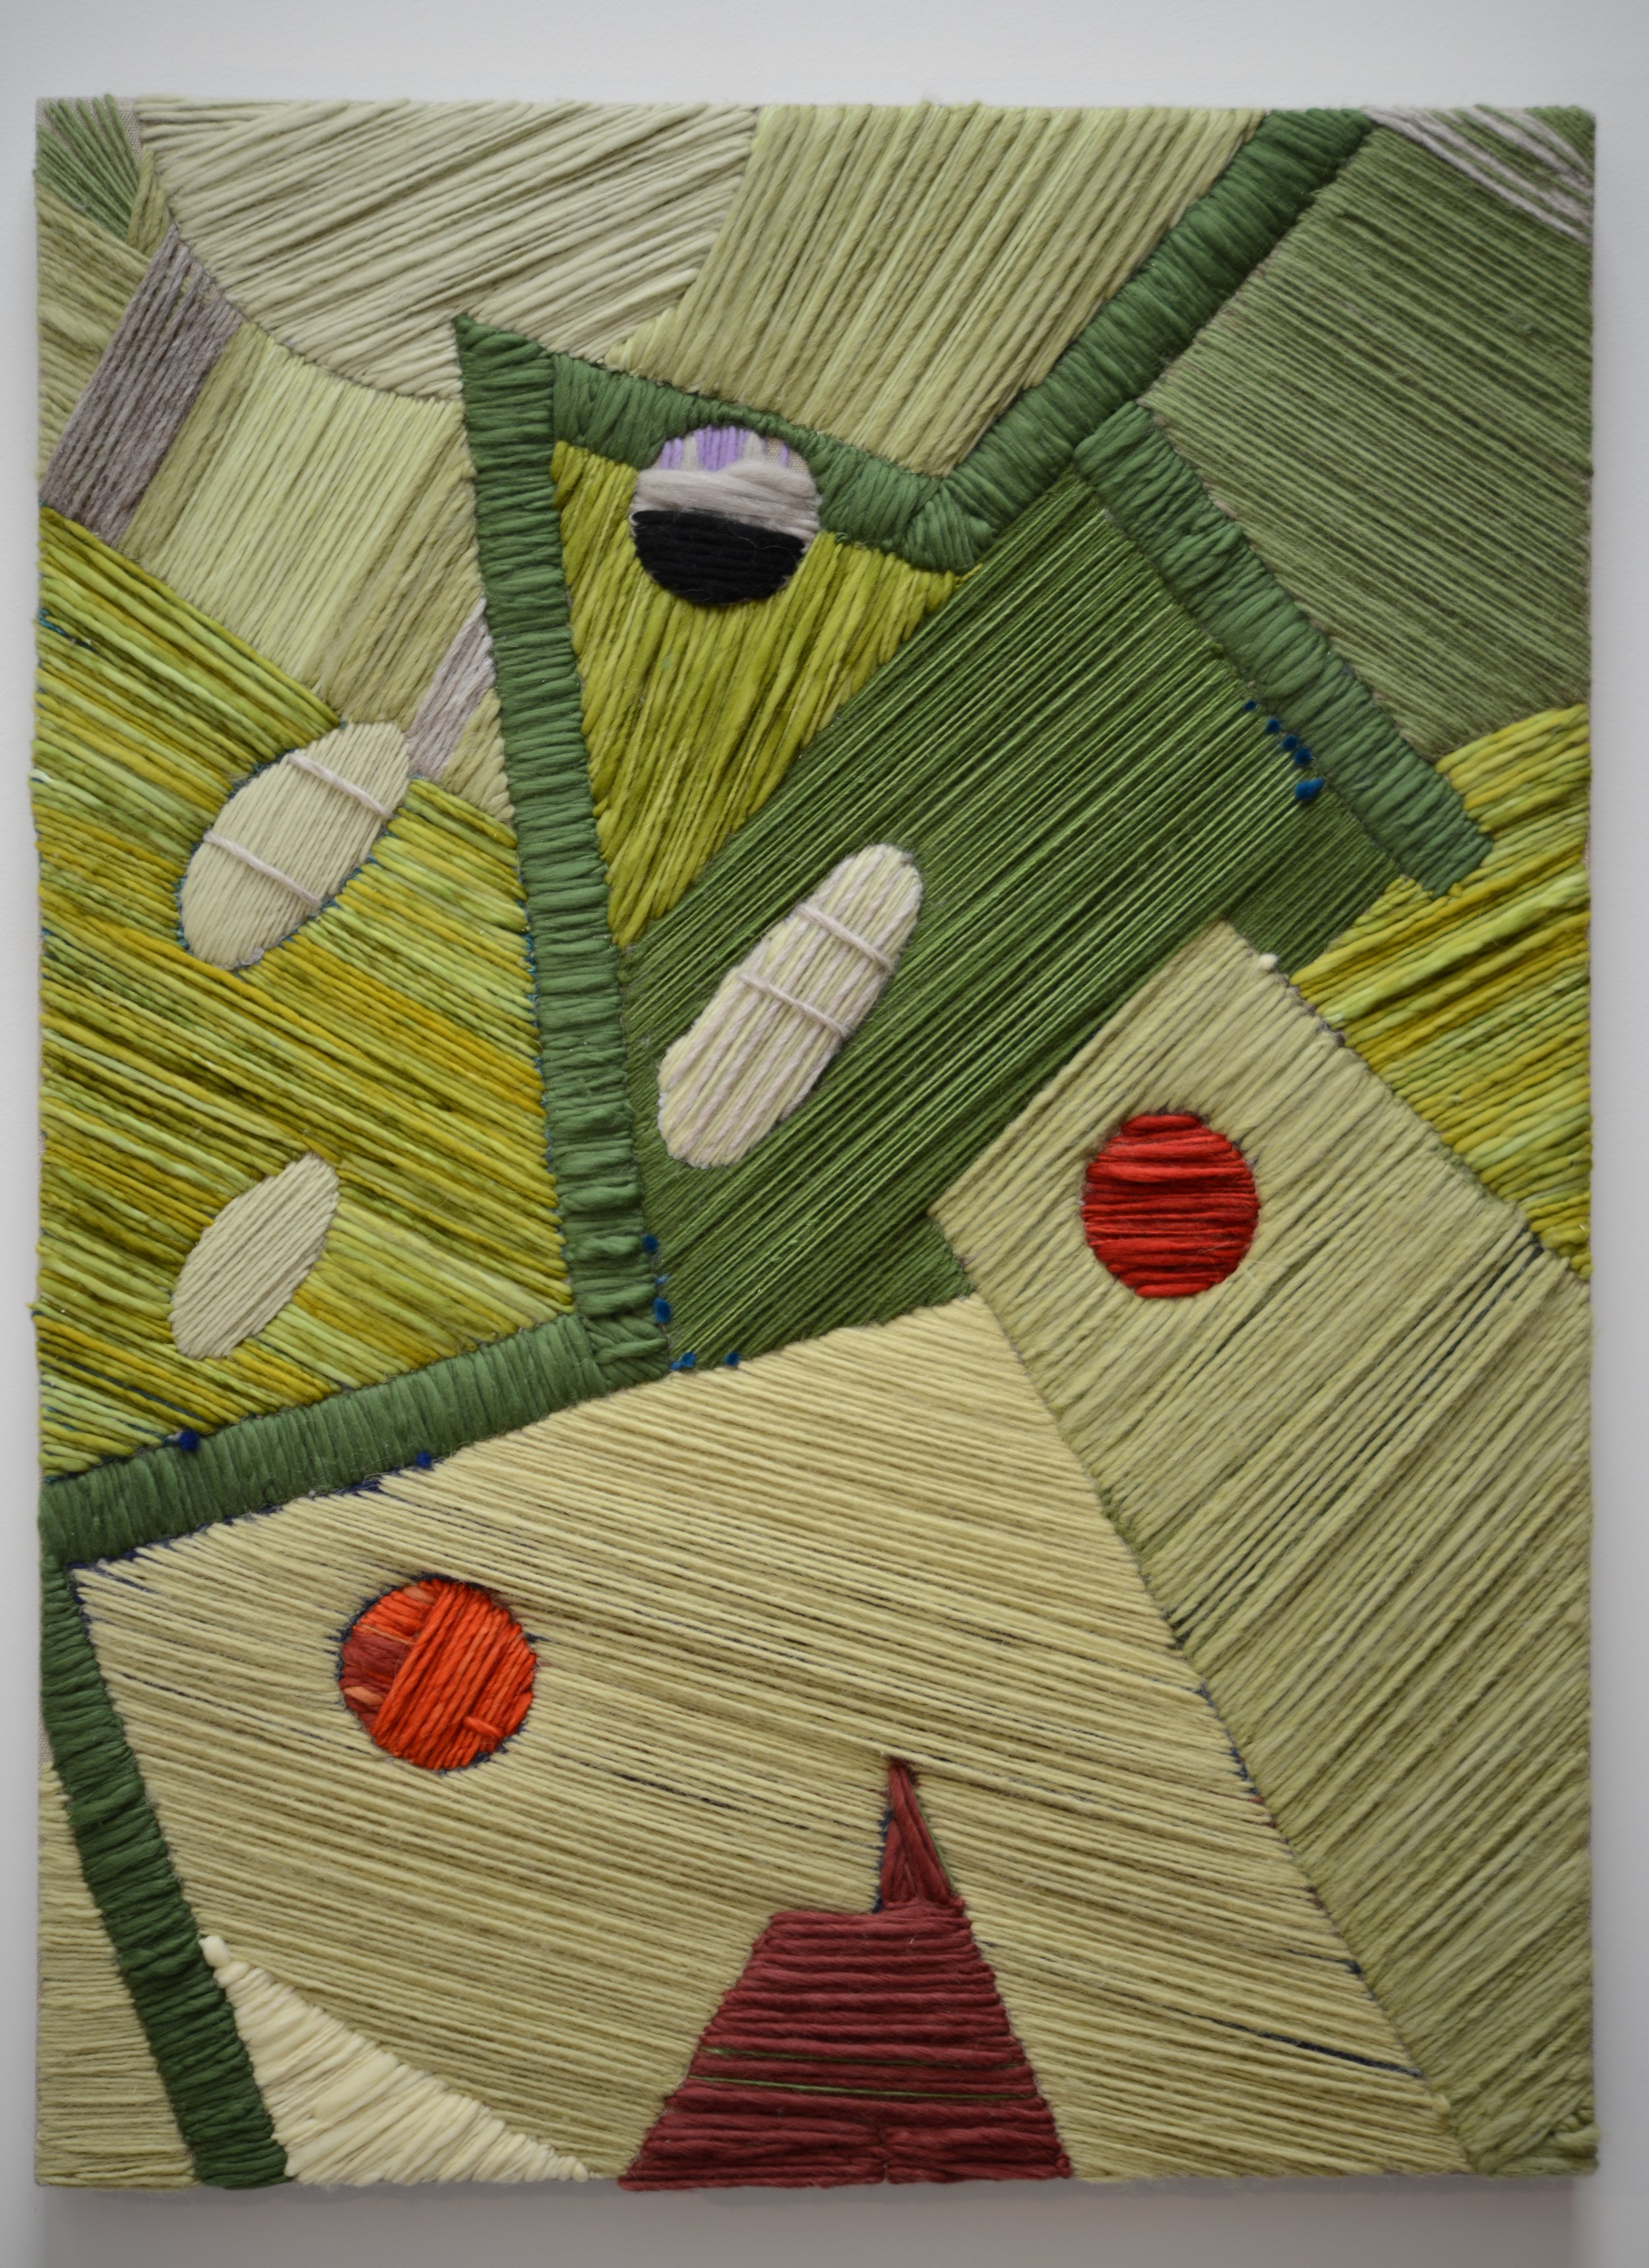 System 2 2017 Wool and Linen 40 x 30 inches Private Collection